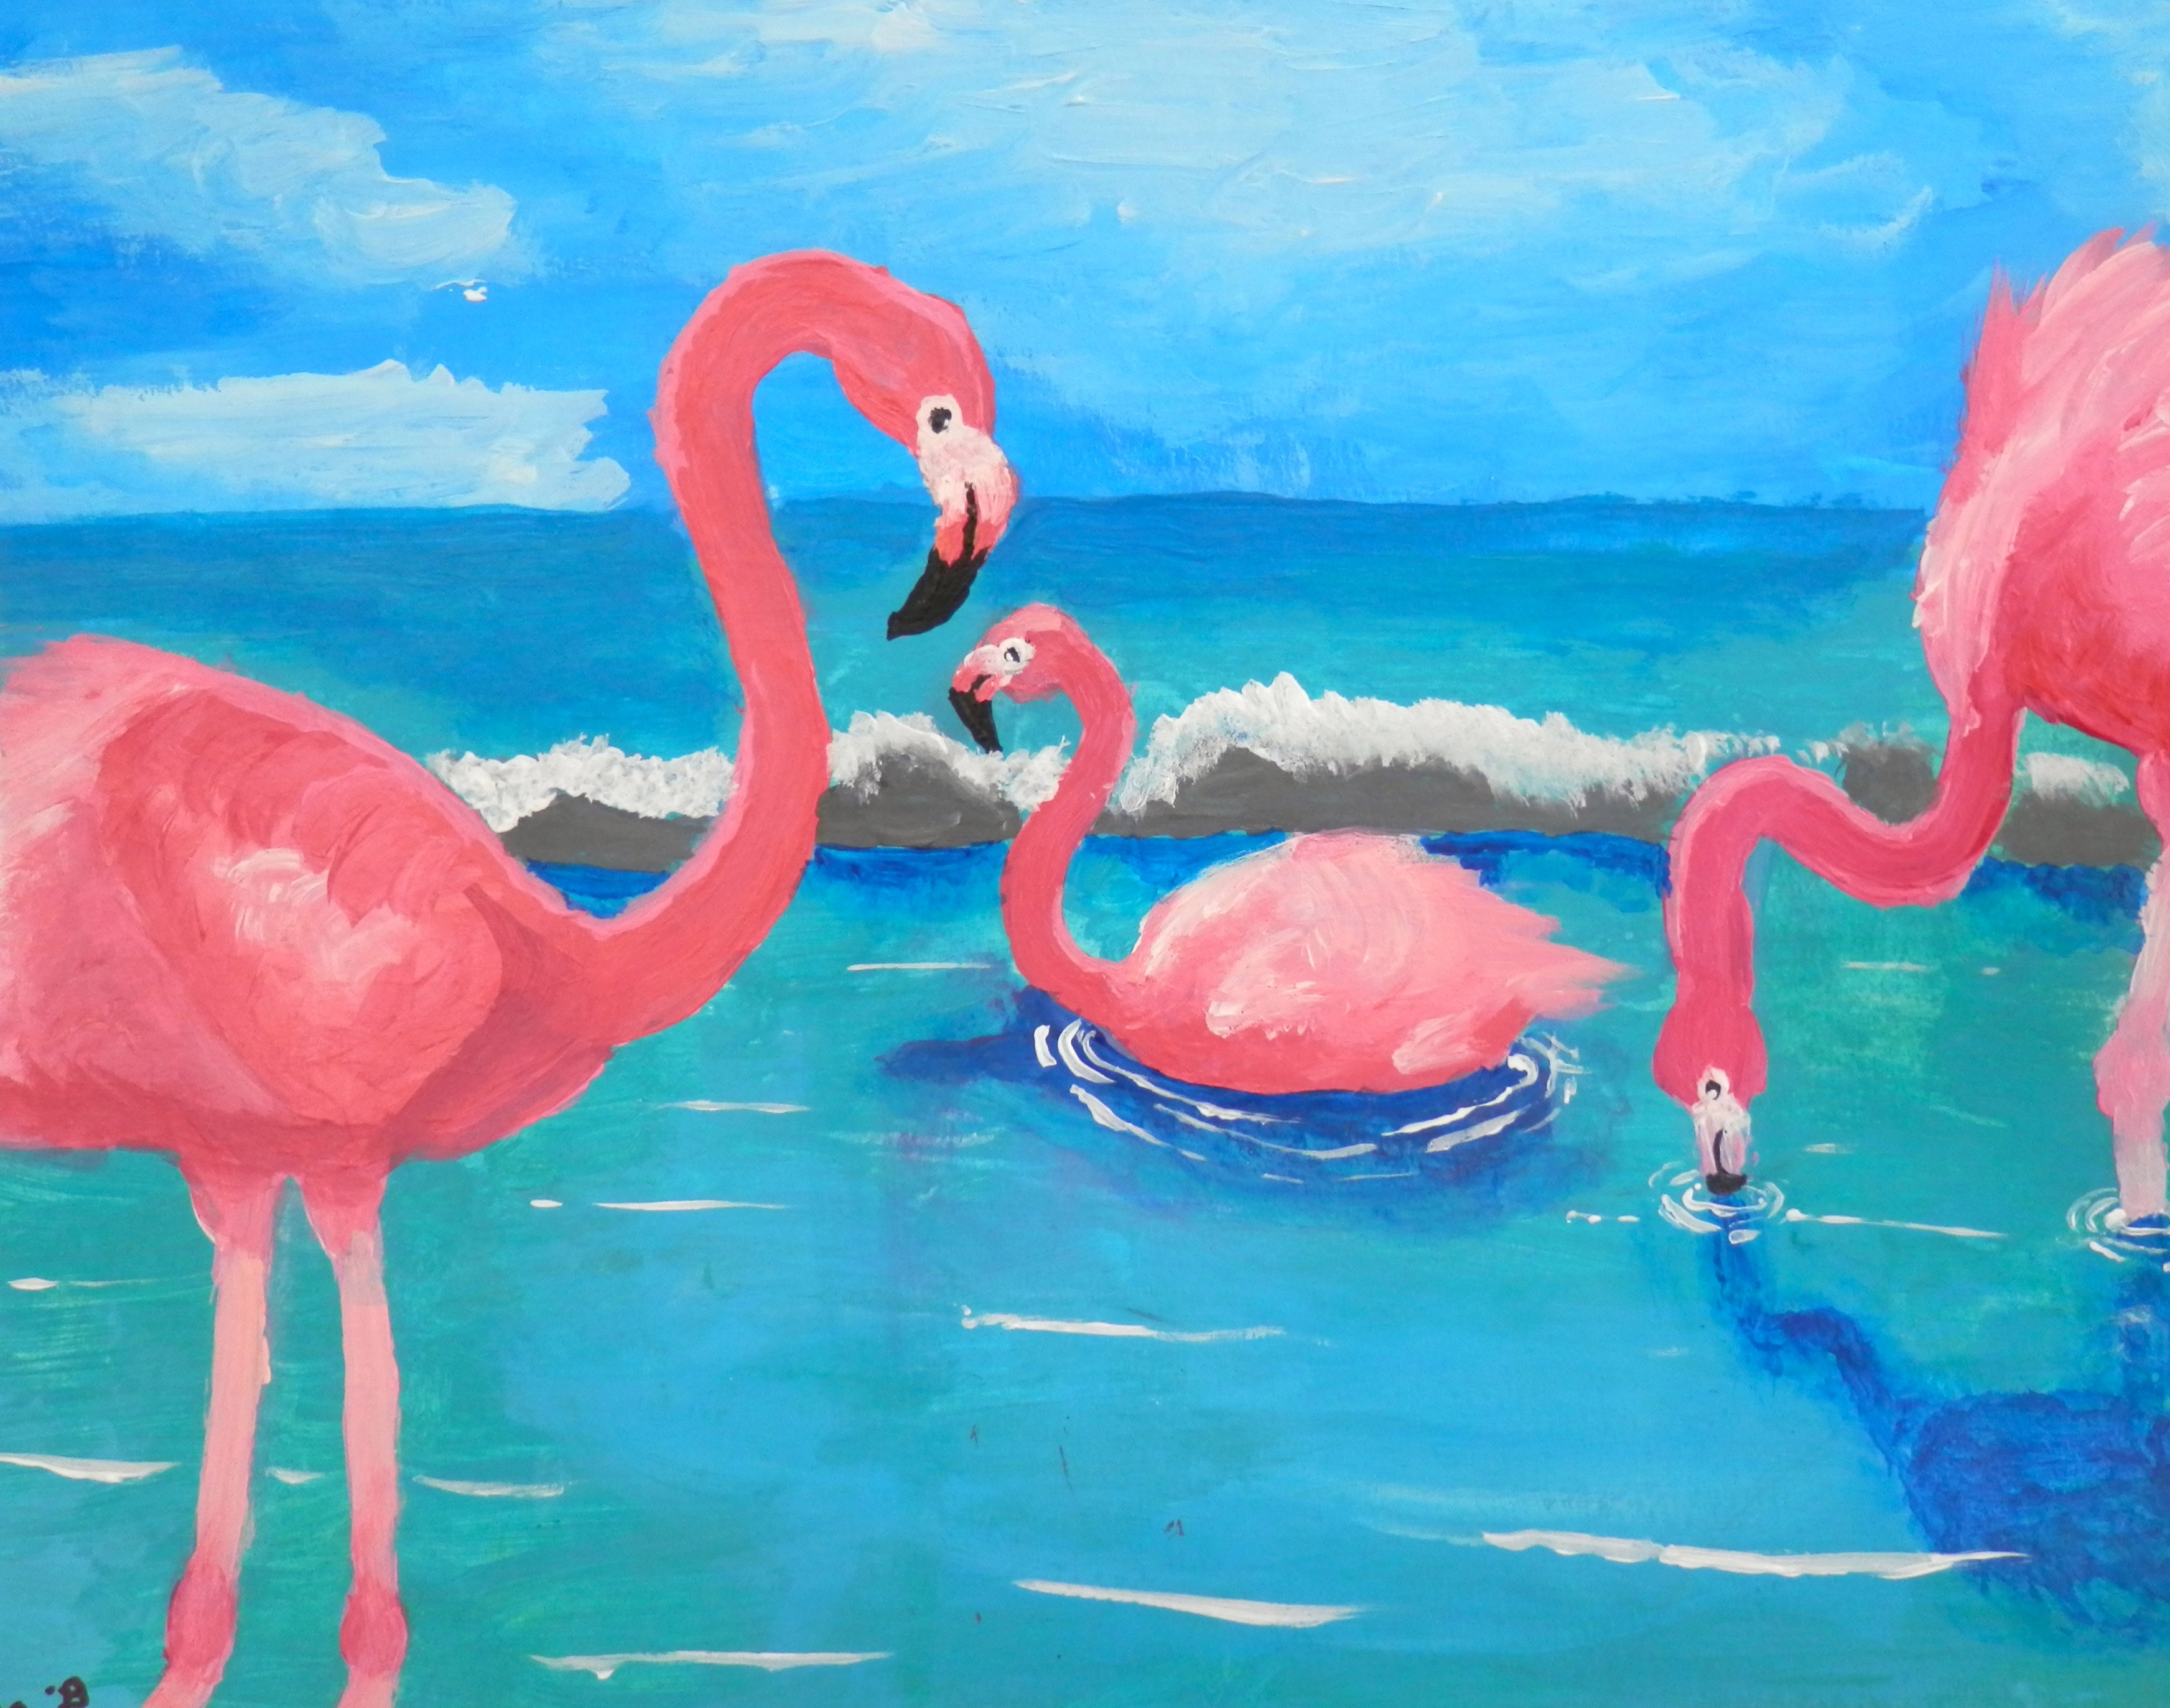 Flamingos (painting or plasticine relief)